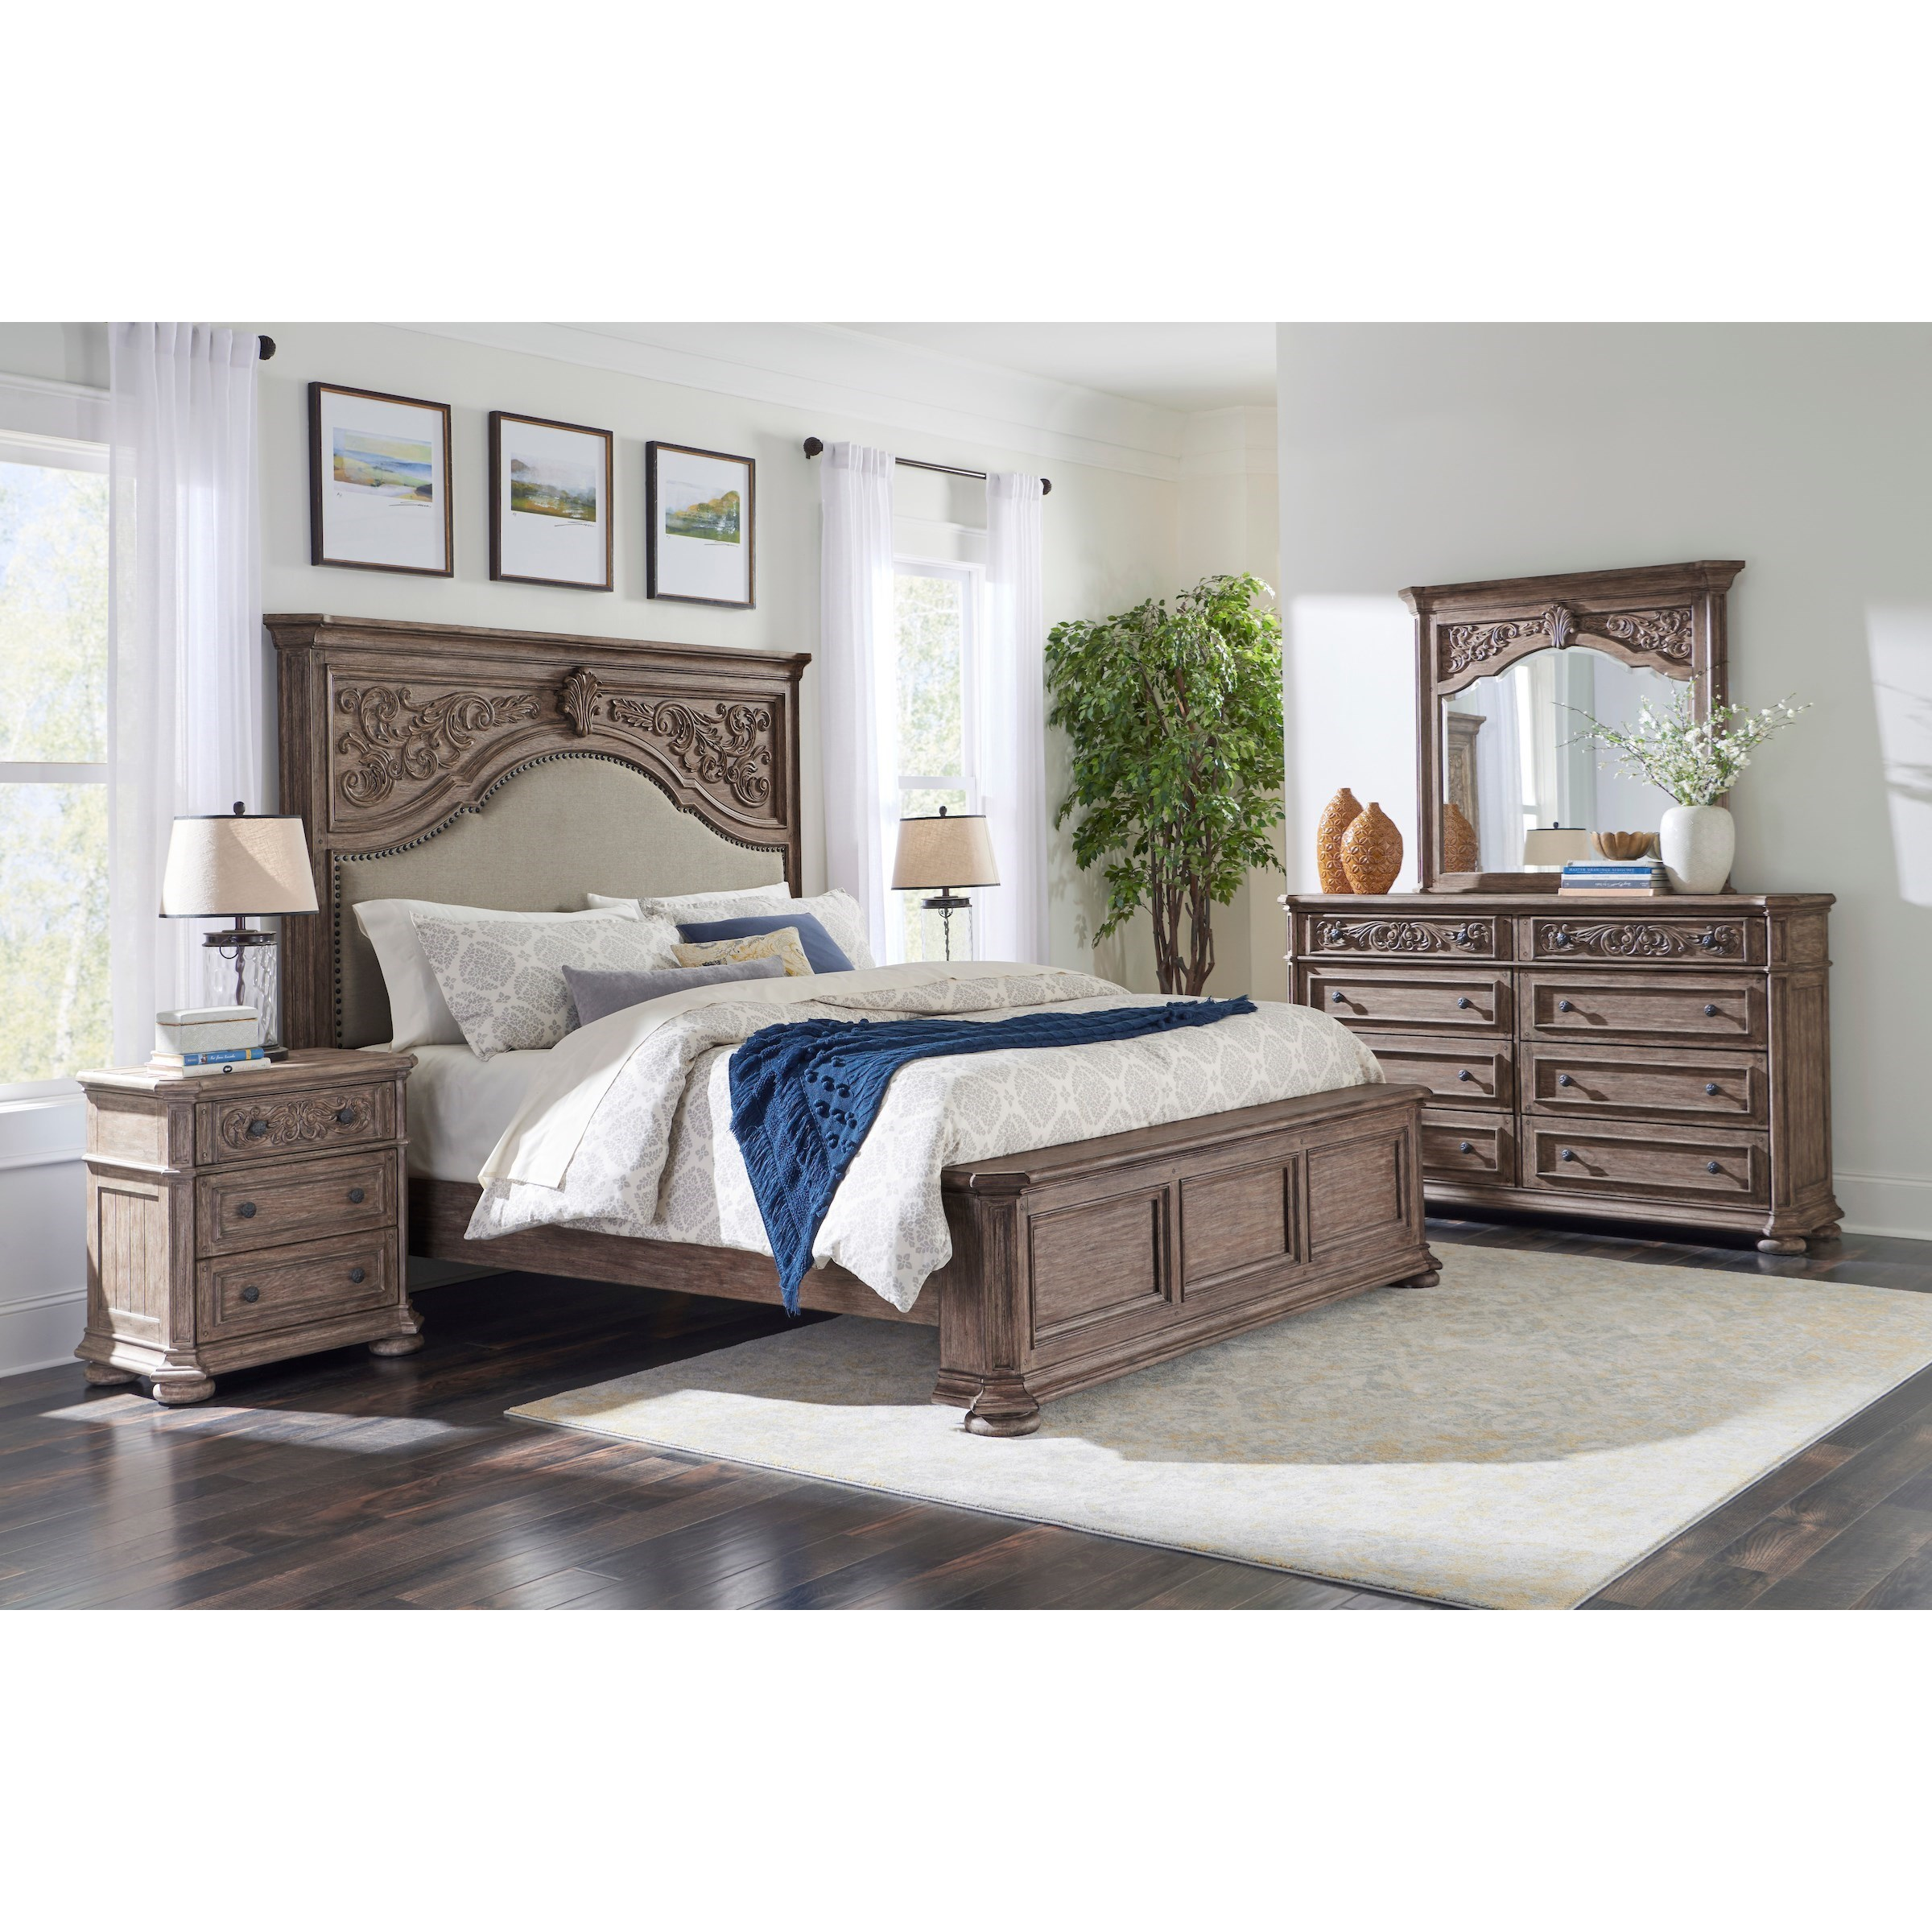 Cardoso California King Bedroom Group  by Klaussner International at Northeast Factory Direct